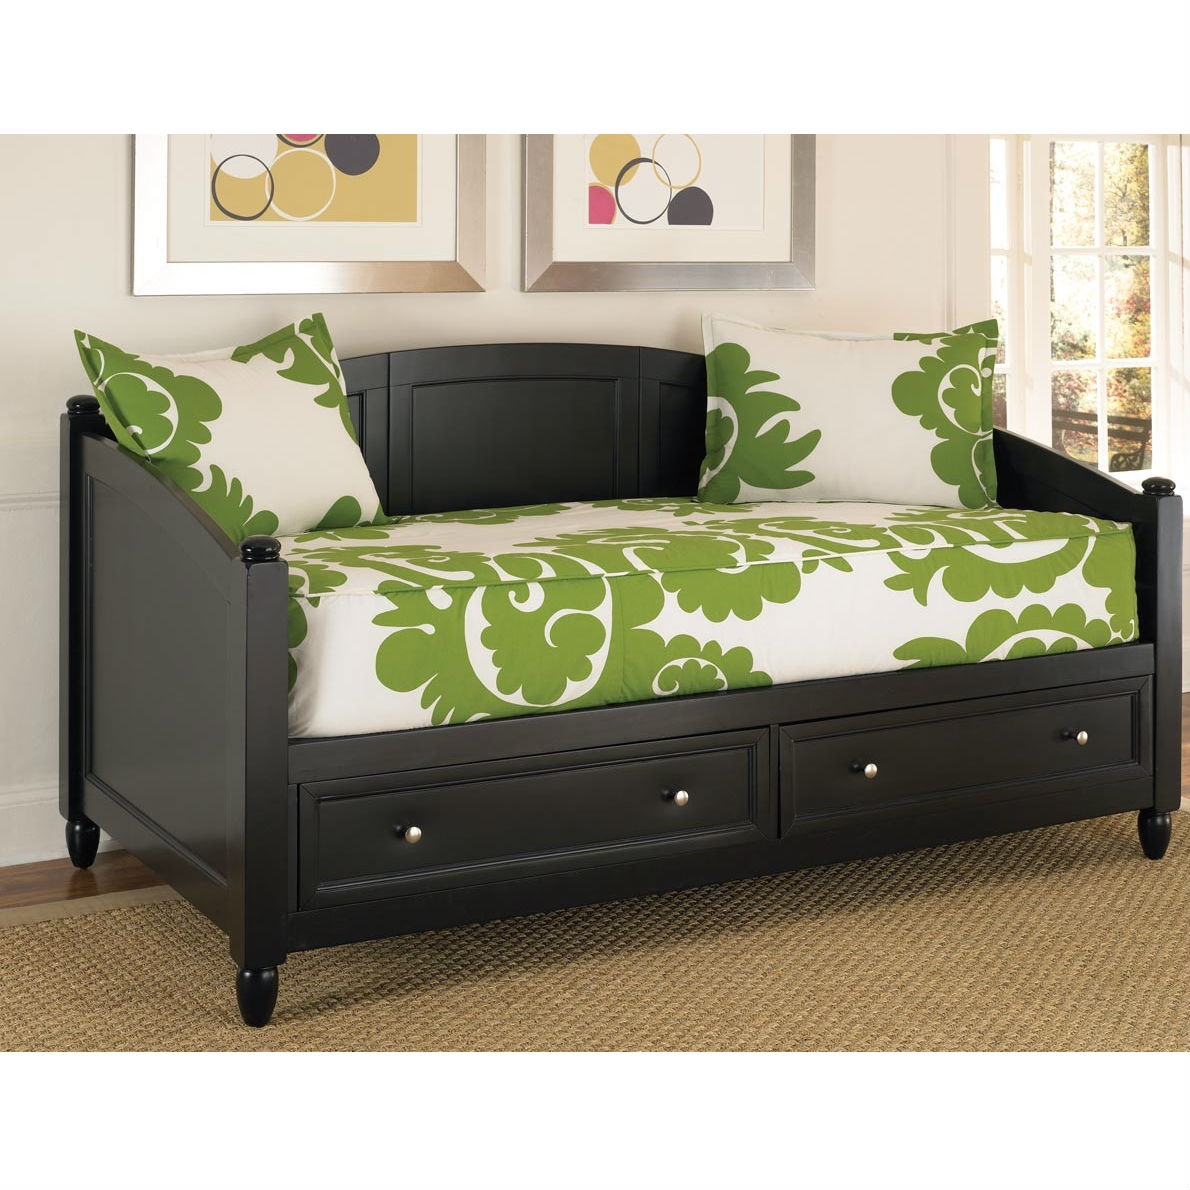 Twin size Black Wood Contemporary Daybed with Storage Drawers: Product Code: HSBD72628 : This Twin size Black Wood Contemporary Daybed with Storage Drawers would be a great addition to your home. It has two large storage drawers and a contemporary style. Recessed drawer fronts and brushed nickel hardware; Two large storage drawers; Solid wood slats for strength and stability; Style: Contemporary Assembly Required: Yes; Tools Needed for Assembly: Phillips screwdriver; Product Warranty: Vendor replaces parts for 30 days; Finish: Black Hardware; Finish: Brushed nickel hardware; Frame Material: Wood; Number of Items Included (Storage Accessories): 1; Number of Items Included (Storage and Chest Accessories): Includes 2 items: Daybed and chest; Number of Items Included (Storage and Expan-Desk Accessories): Includes 2 items: Daybed and expand-a-desk. Non-Toxic: Yes; Back Included: Yes; Arms Included: Yes; Drawers Included: Yes; Number of Drawers: 2; Number of Drawers: 6; Number of Drawers: 6.